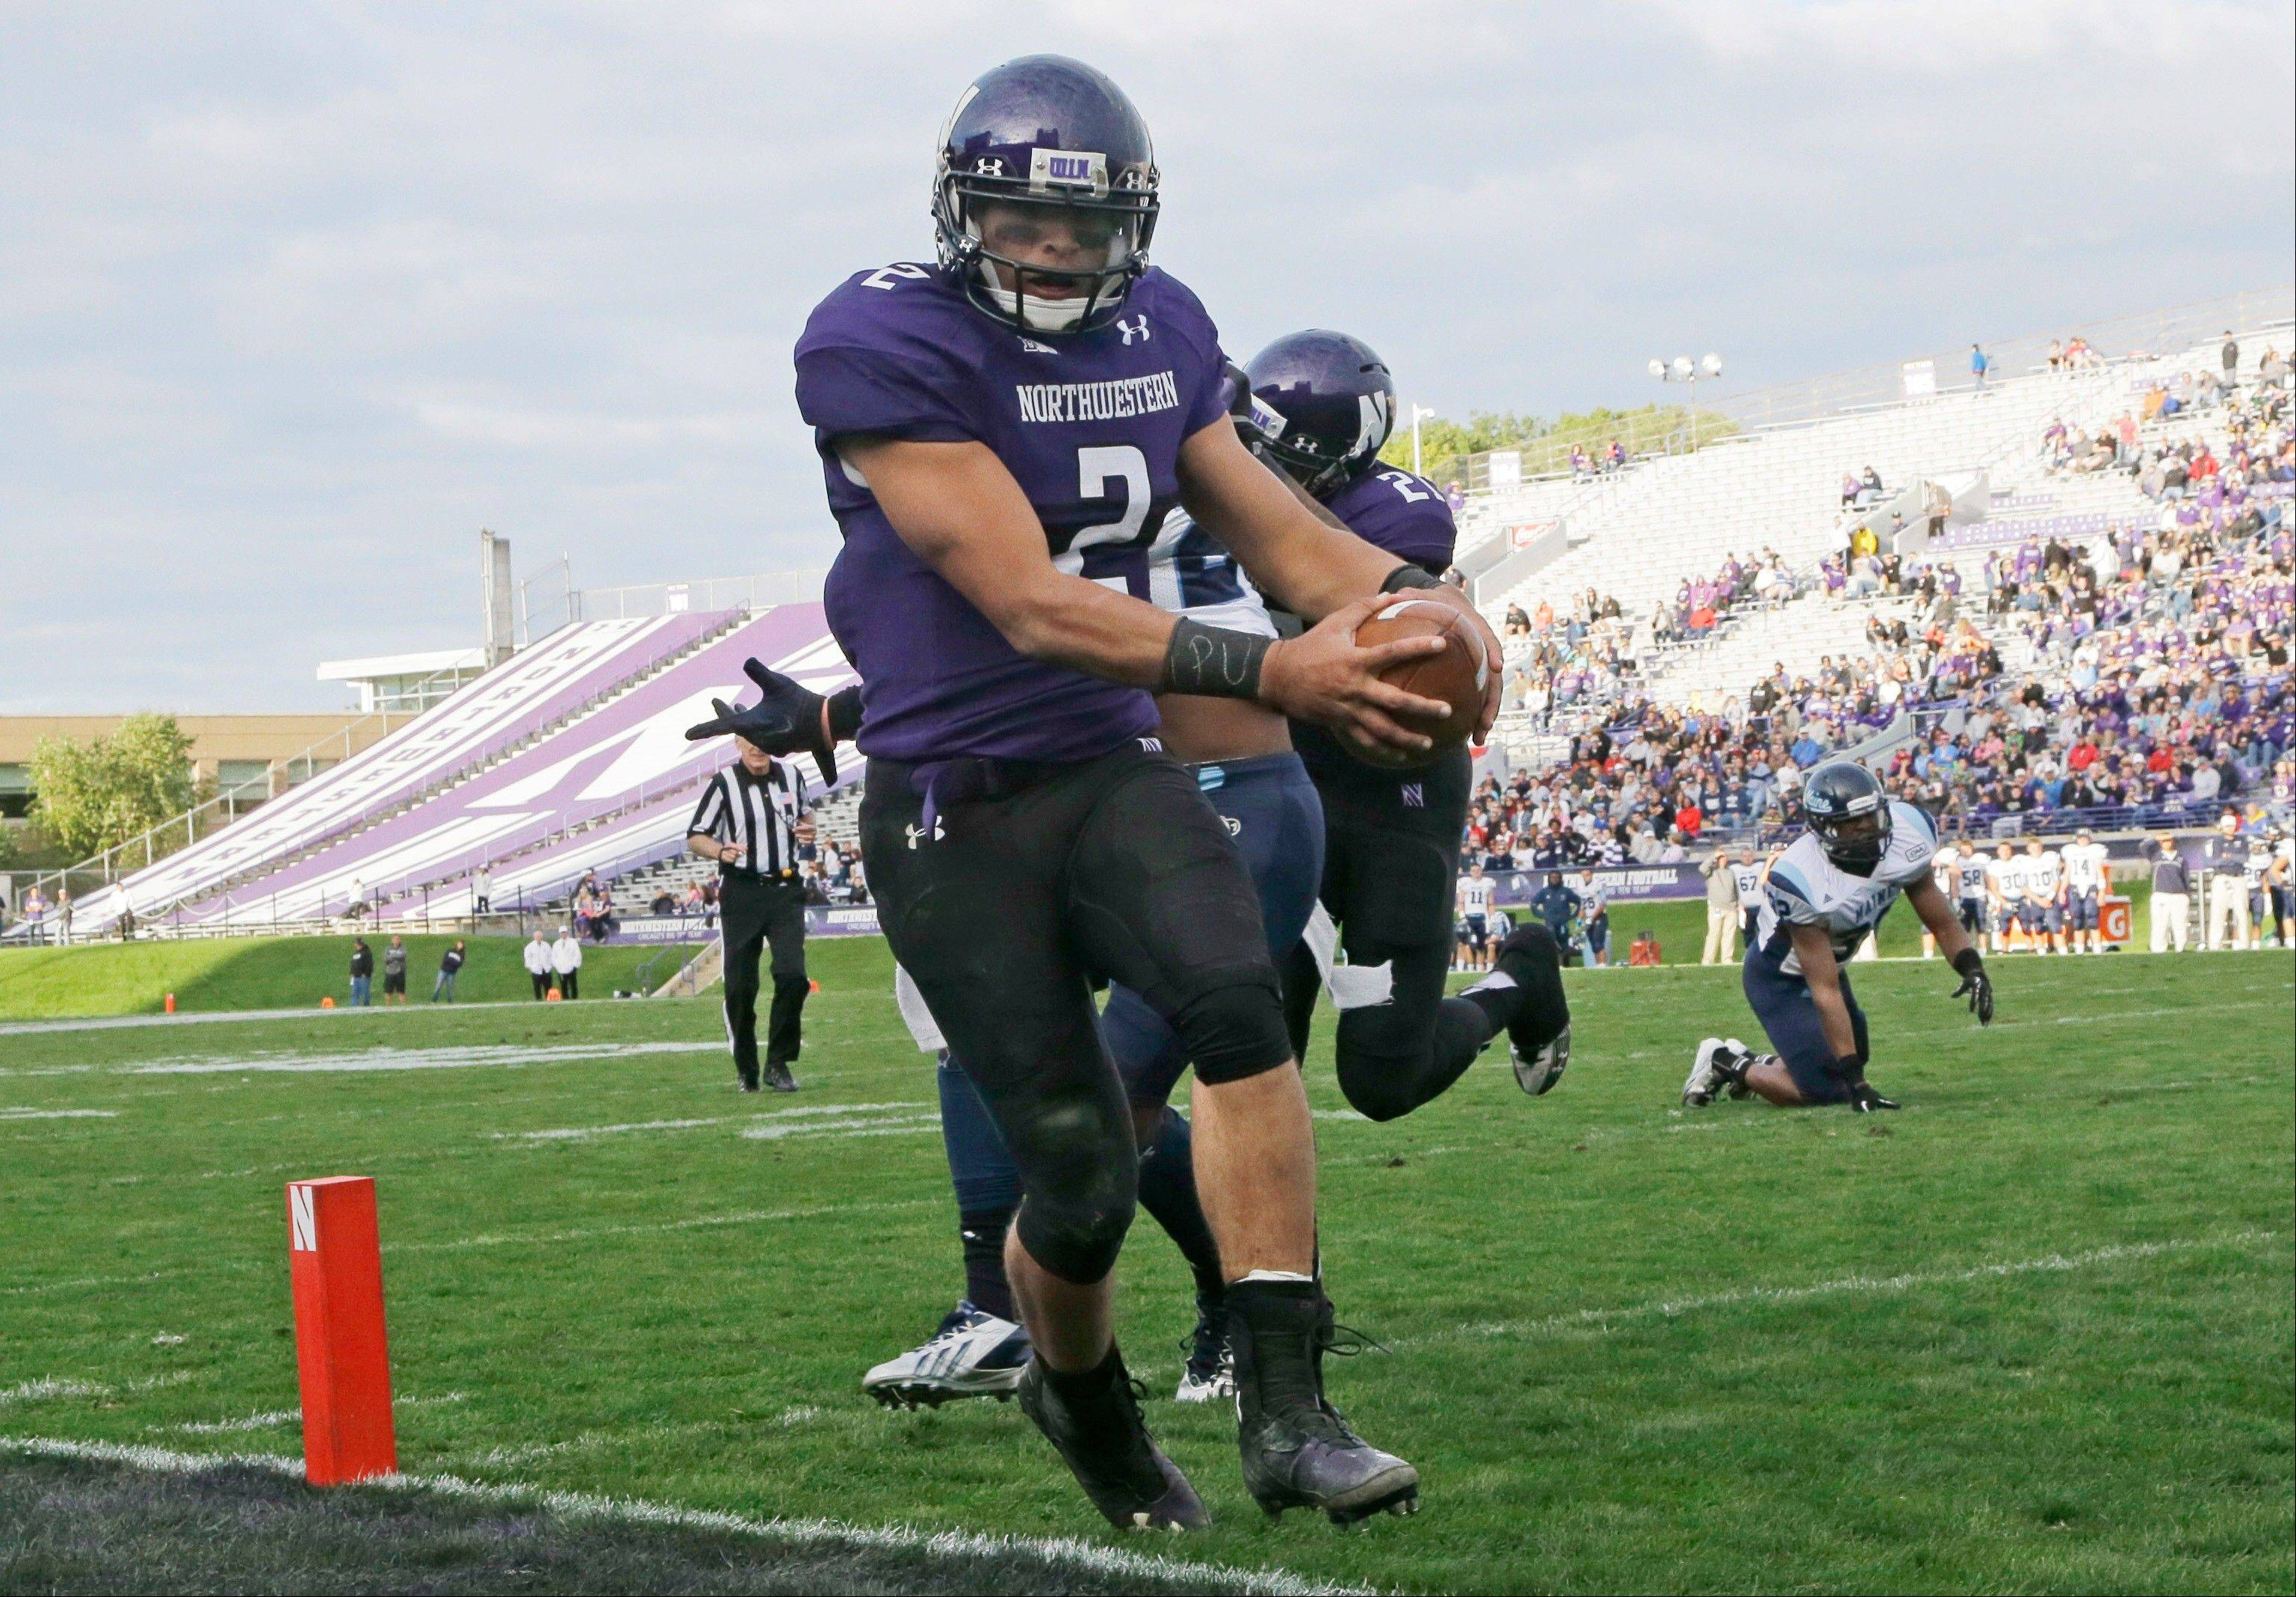 Northwestern quarterback Kain Colter scores a touchdown during the second half against Maine on Sept. 21 in Evanston.